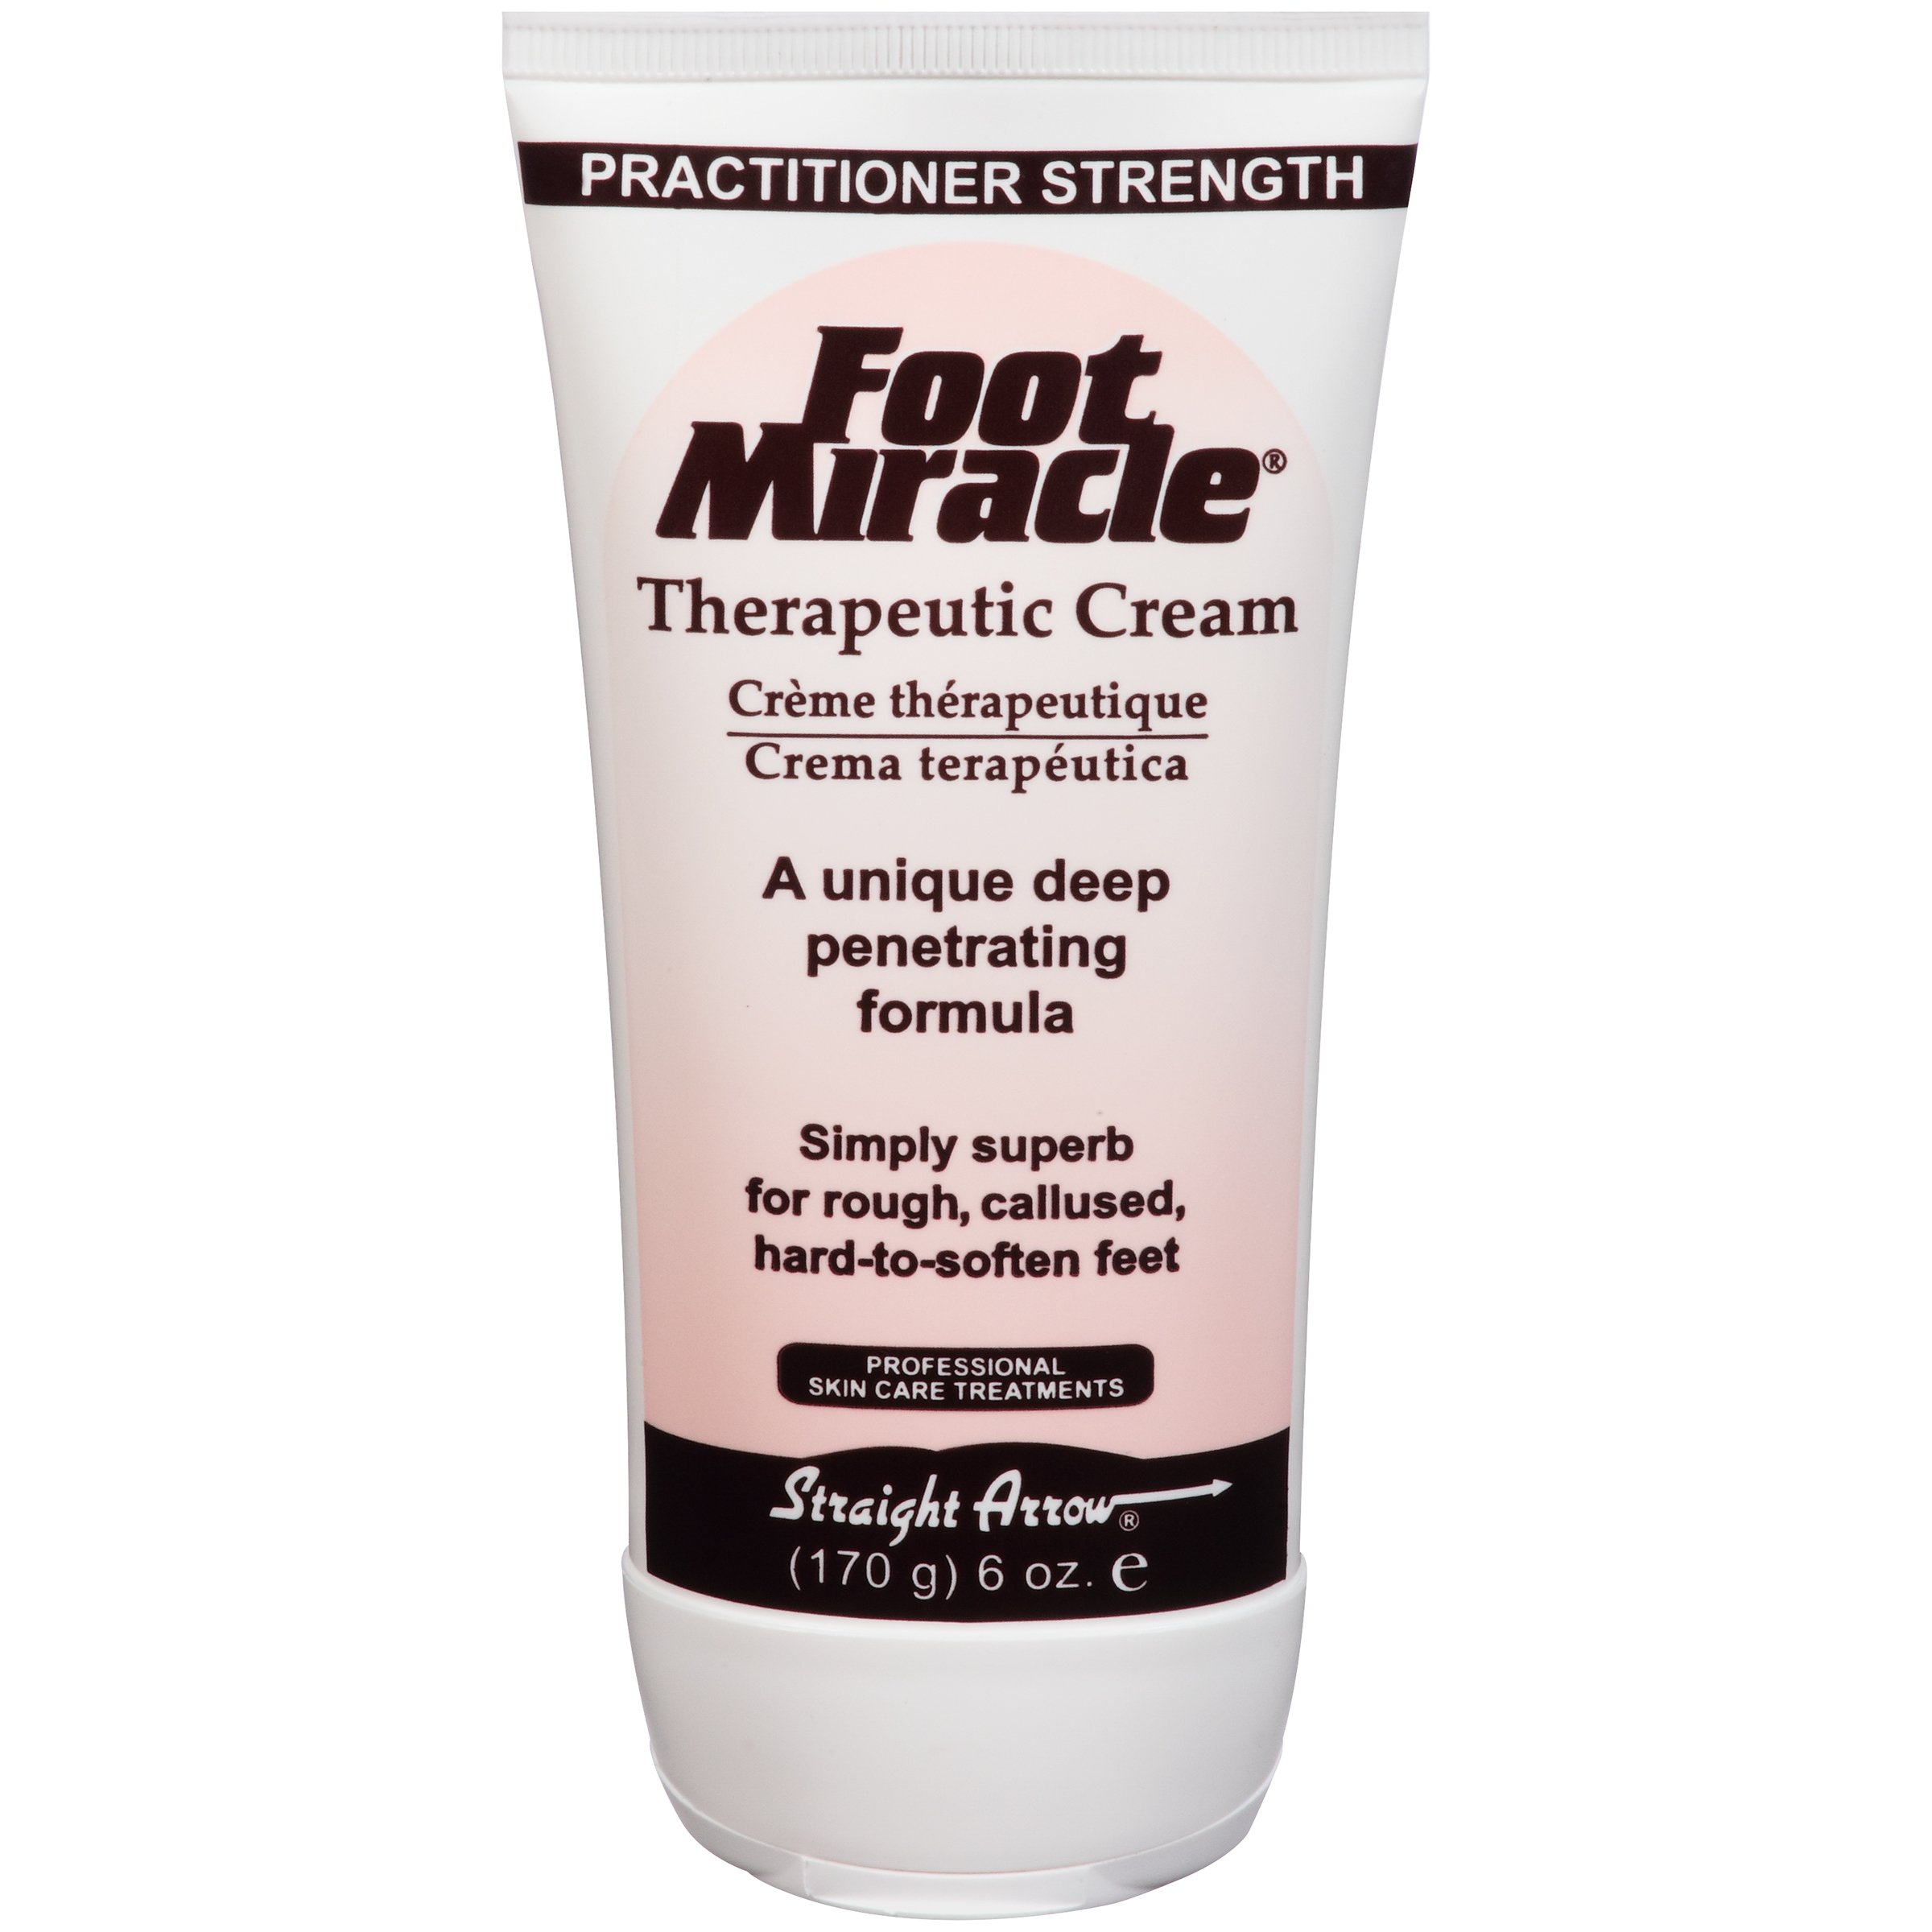 Miracle Foot Moisturizer Foot Cream, Tube, Scented, 6 oz., 743776, 1 Tube